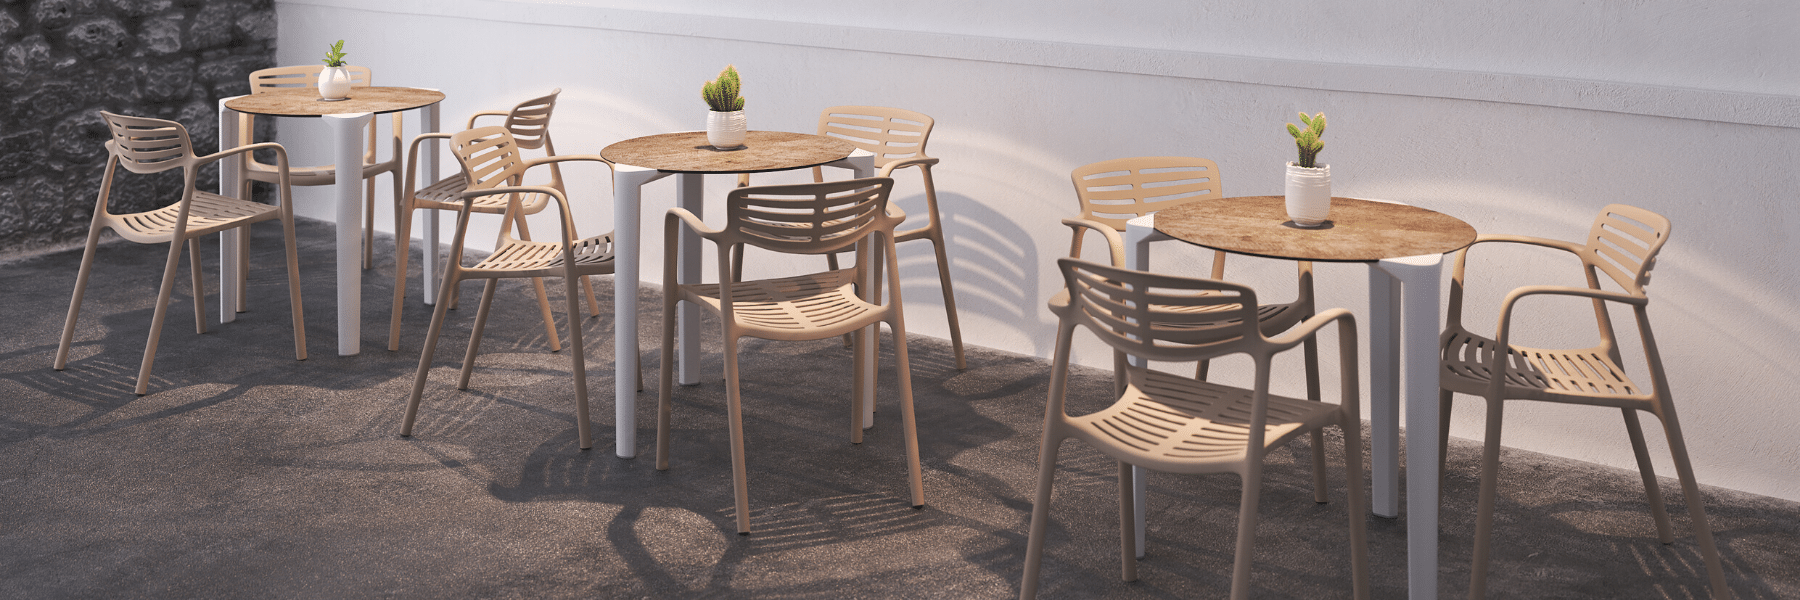 <p>Outdoor Furniture Contemporary Collection – Todas Table.</p> <p> </p> <p>Relaxed and comfortable Hotel Café Terrace Set.</p> <p> </p> <p>Modern Commercial Outdoor Furniture desired by Architects designing stylish hotel terrace areas. Includes Armchairs, benches, table.</p>